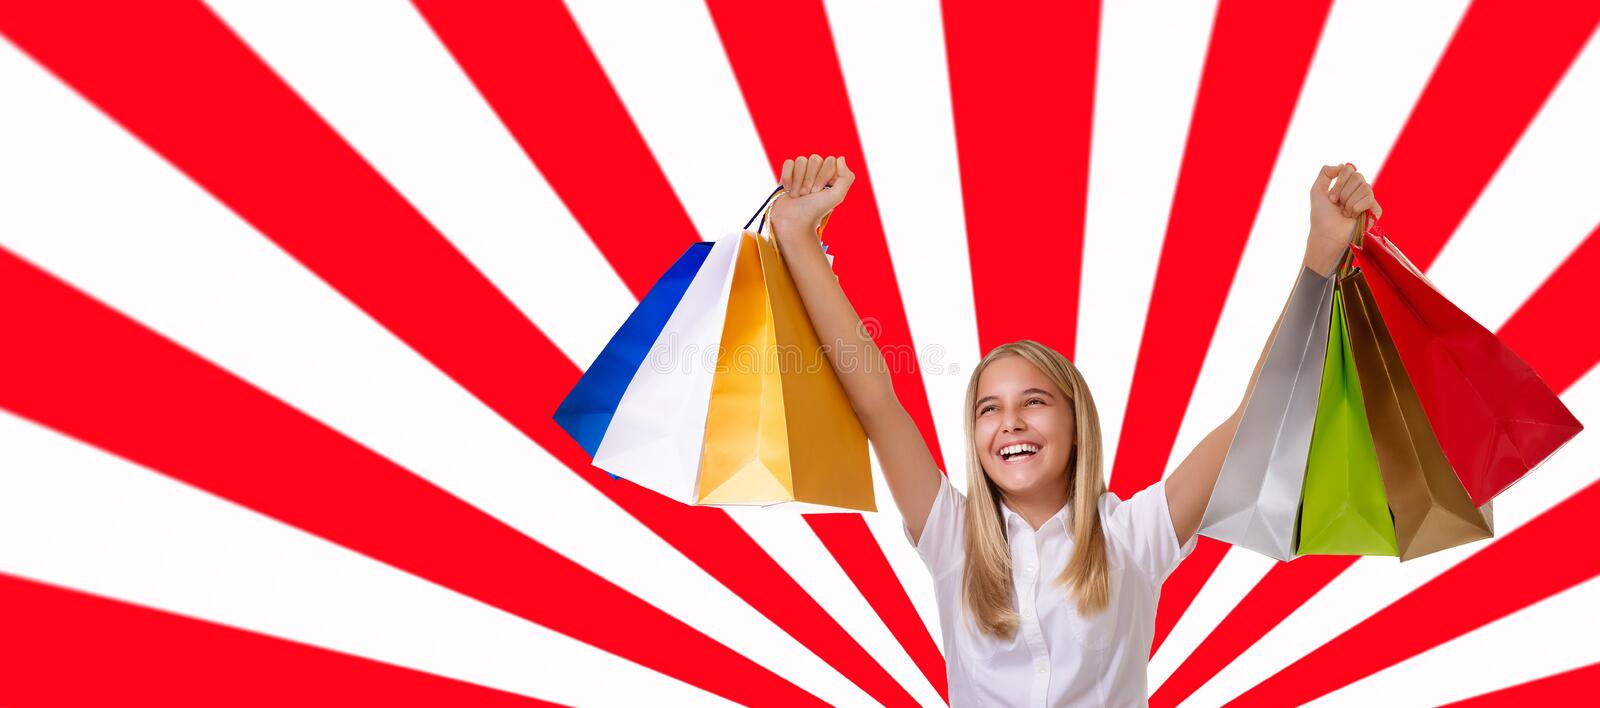 Shopping,holiday and tourism concept - young girl with shopping bags over geometric background stock photography